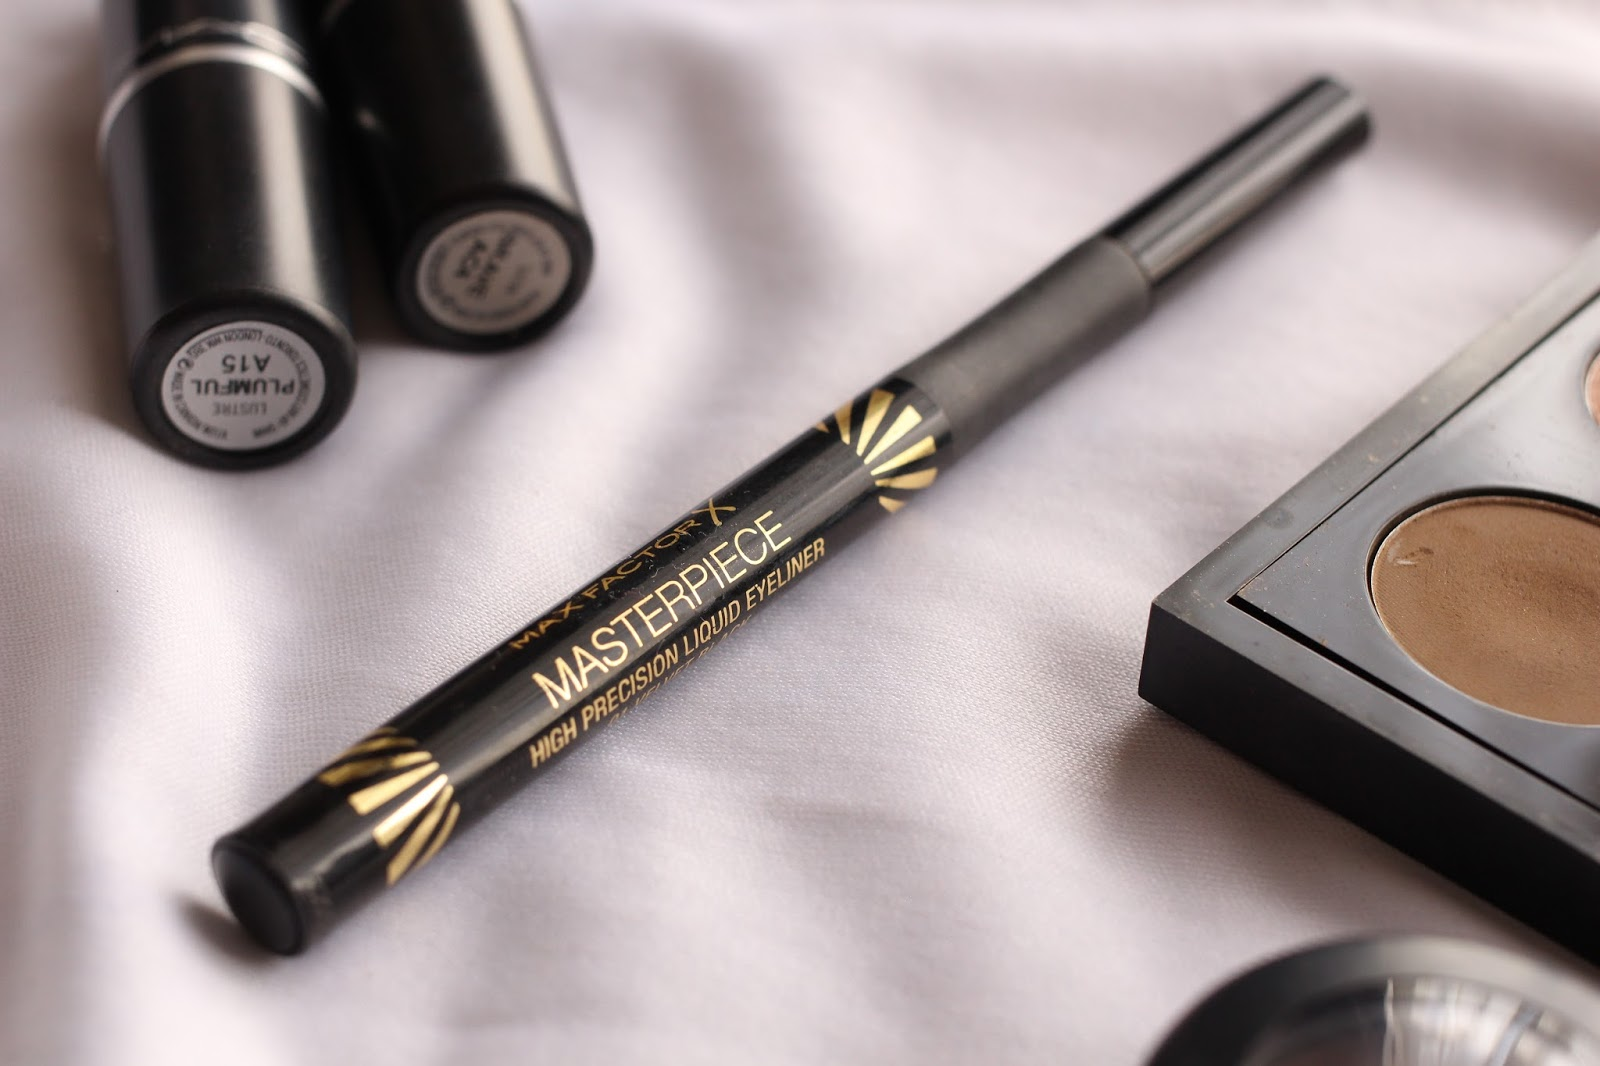 MAXFACTOR MASTERPIECE HIGH PRECISION LIQUID LINER